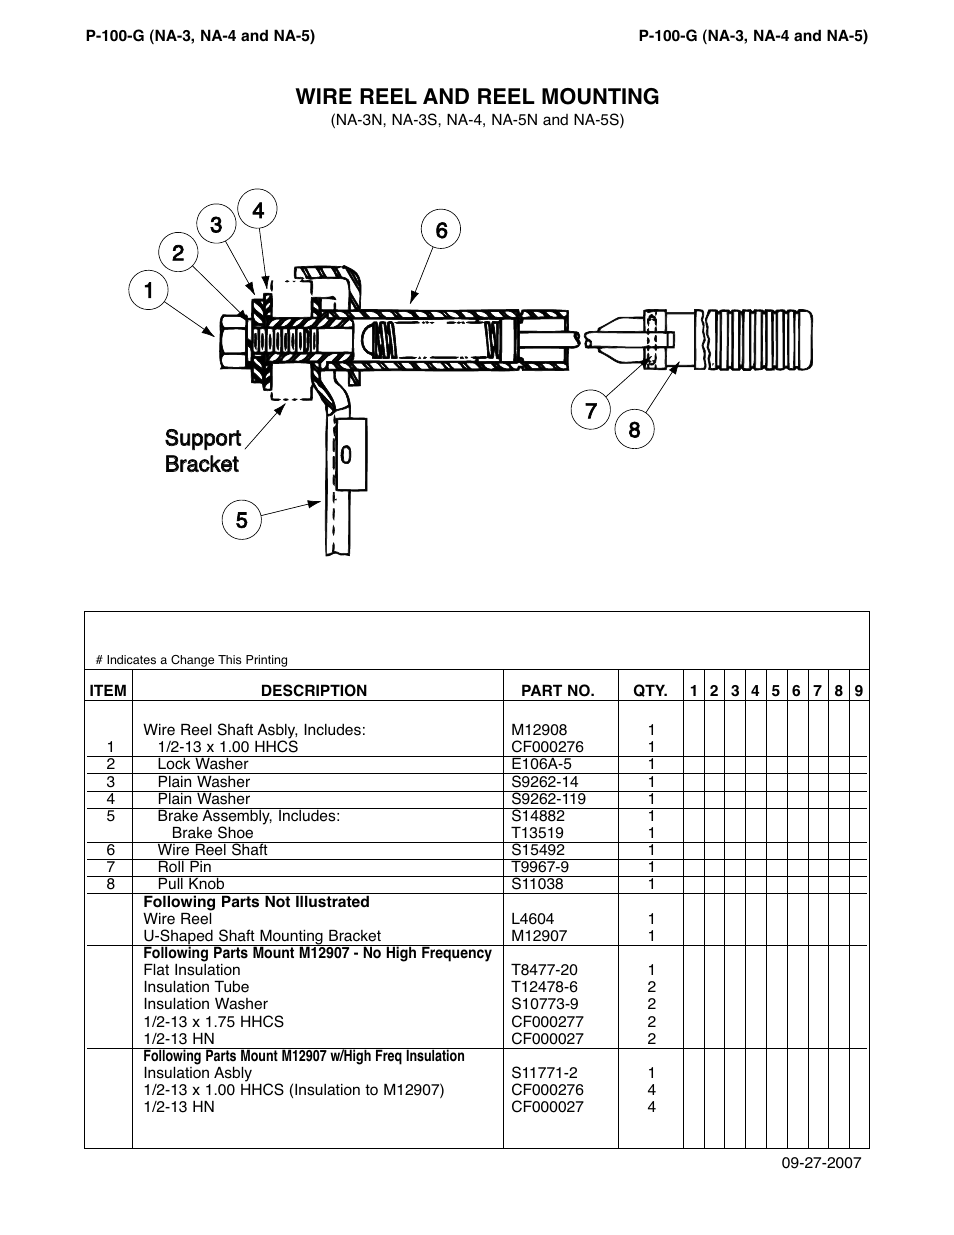 hight resolution of wire reel and reel mounting lincoln electric na 5 im305 c user manual